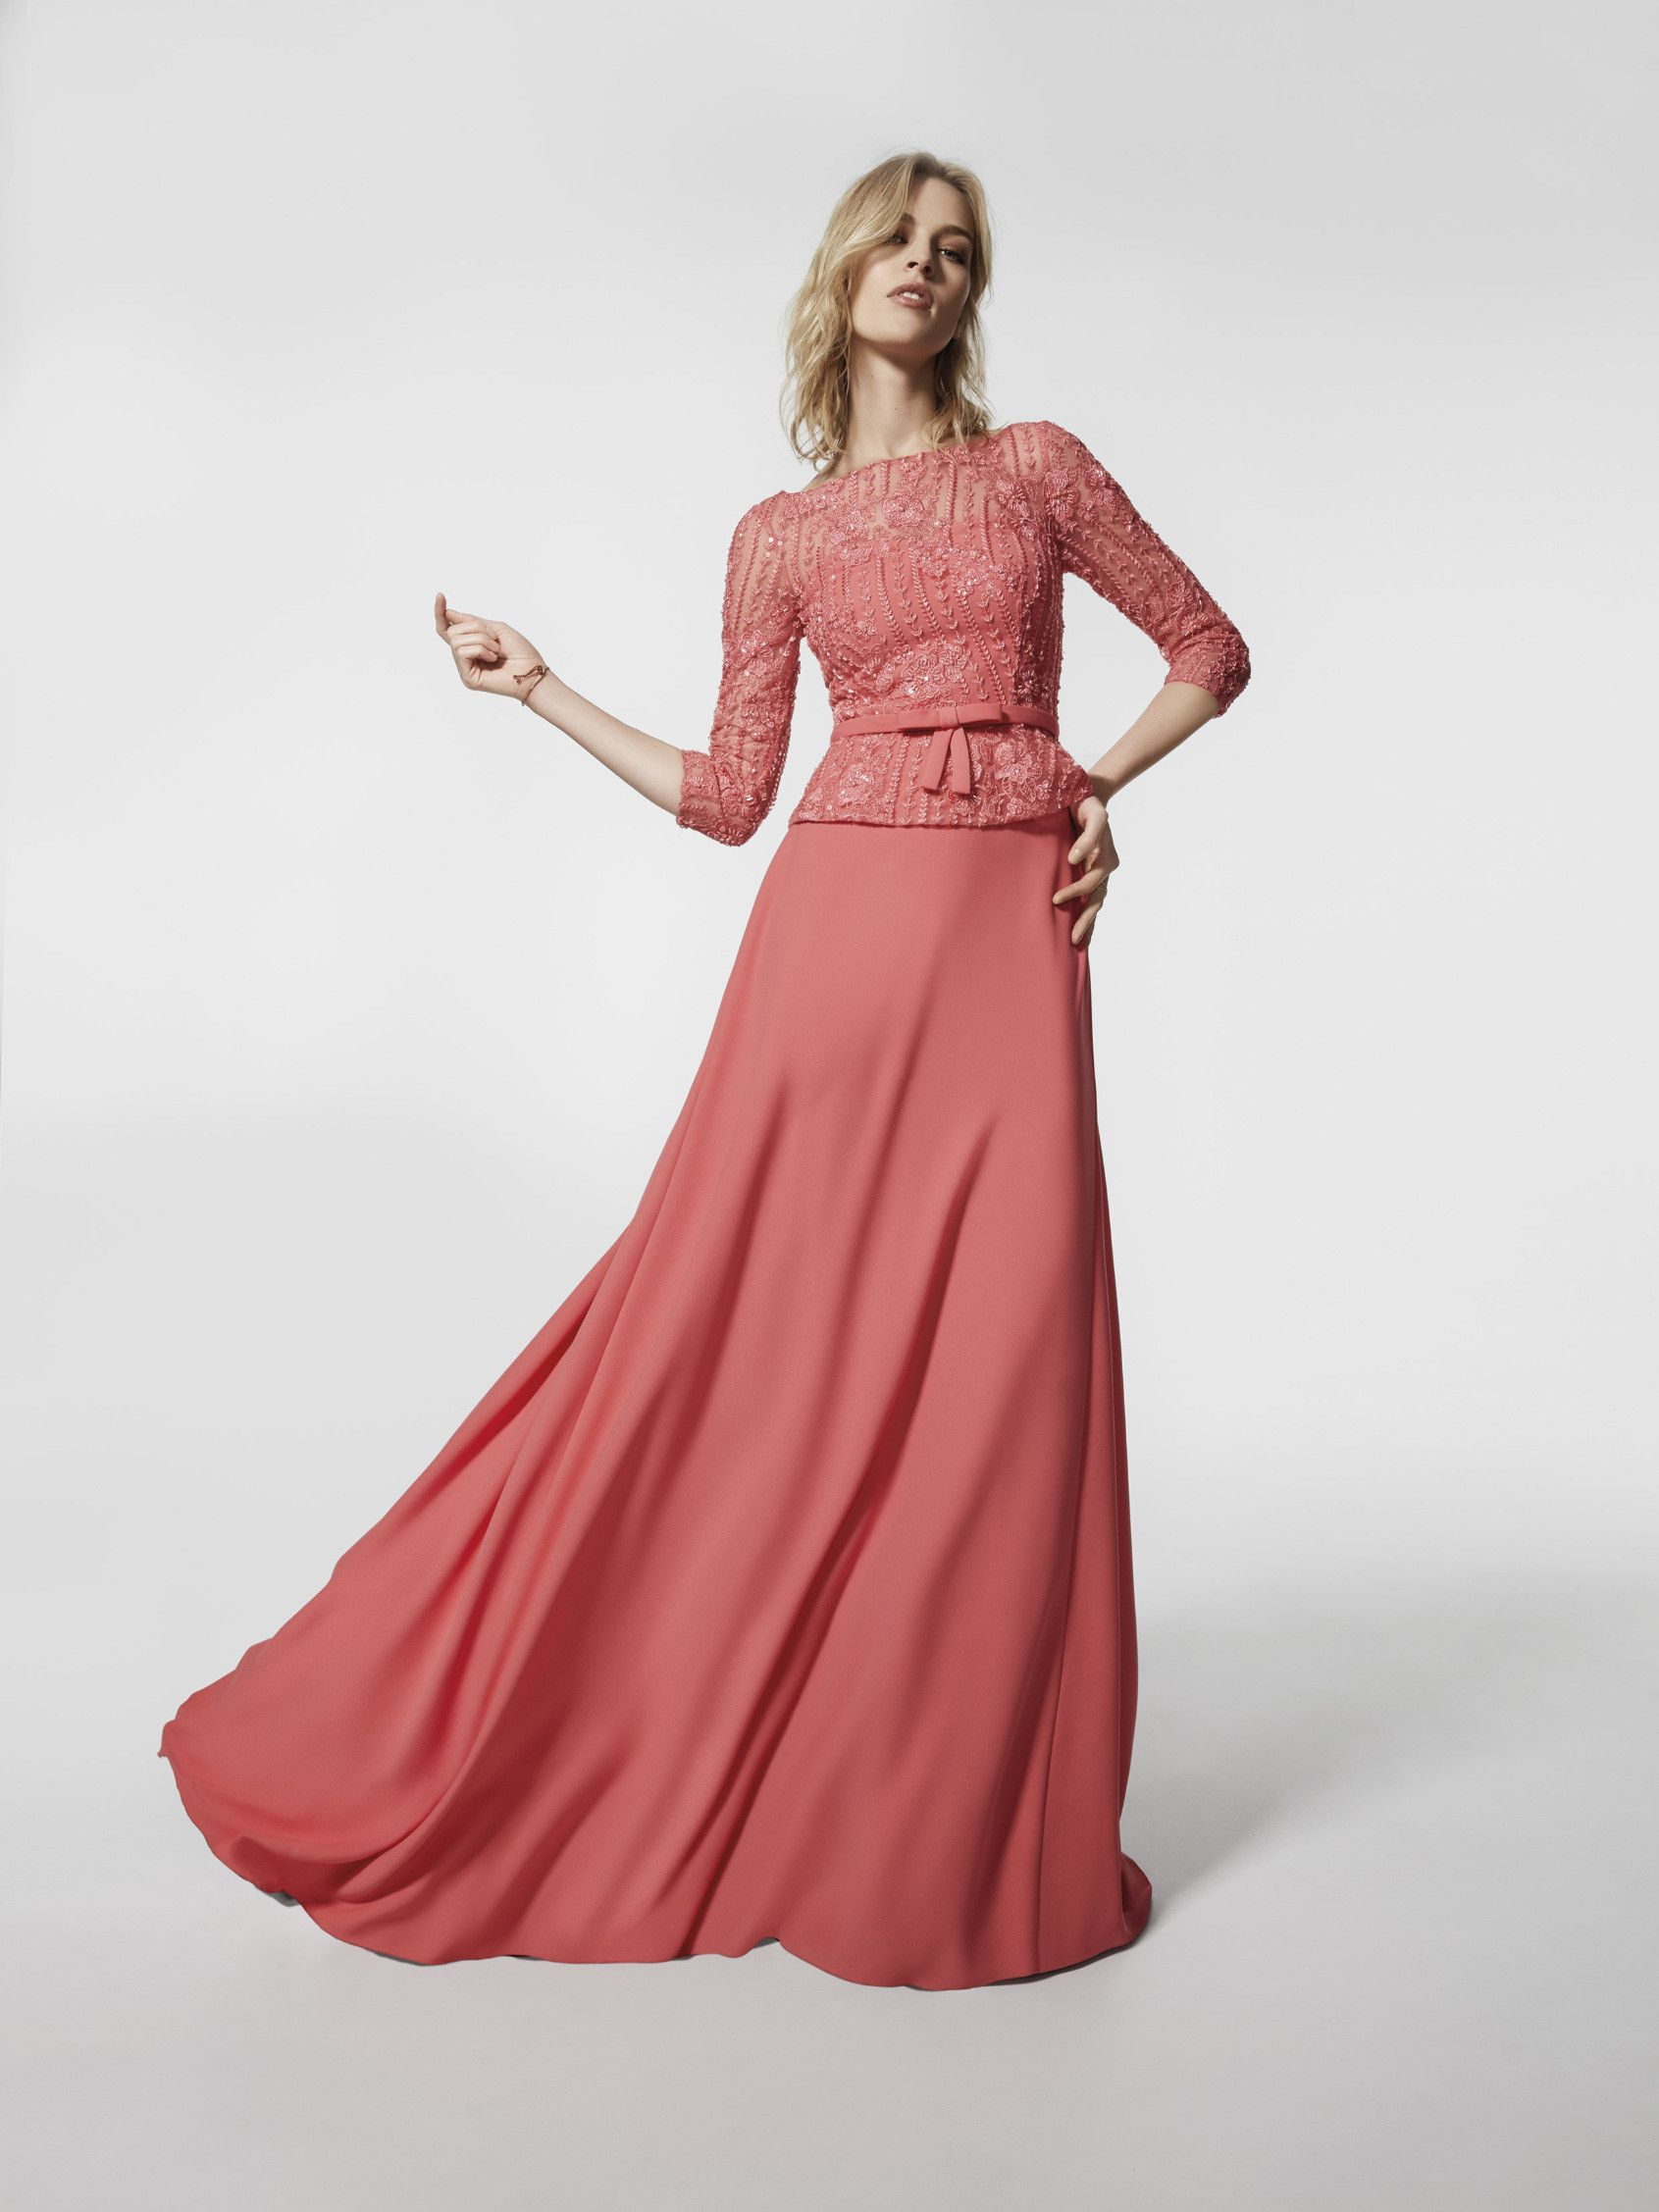 Are you looking for a cocktail dress? This is a long pink dress ...